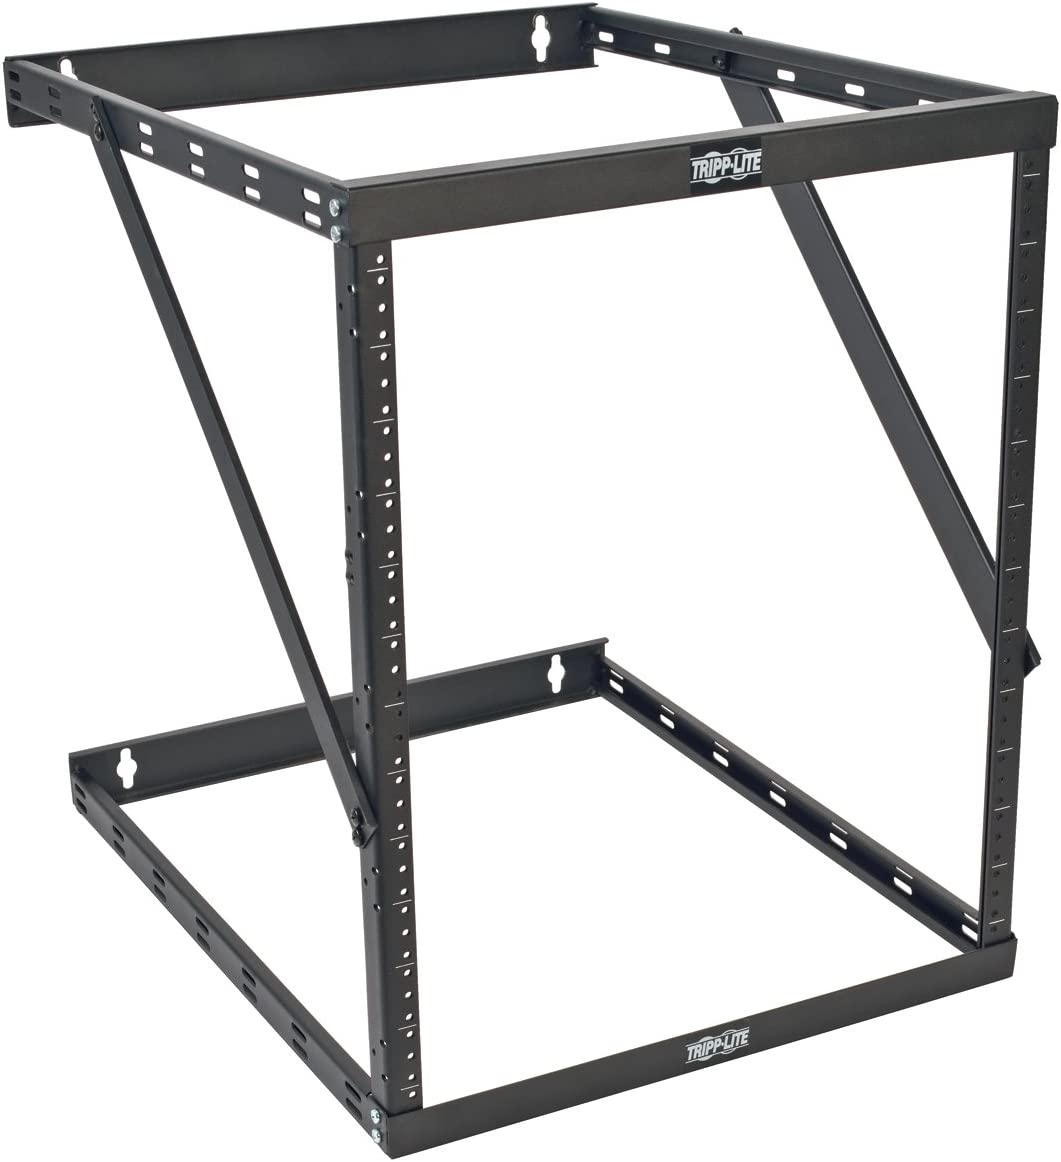 "Tripp Lite 8U/12U/22U Expandable Wall-Mount 2-Post Open Frame Rack, Adjustable Network Equipment Rack, UPS Depth, 23.5"" Deep (SRWO8U22DP)"